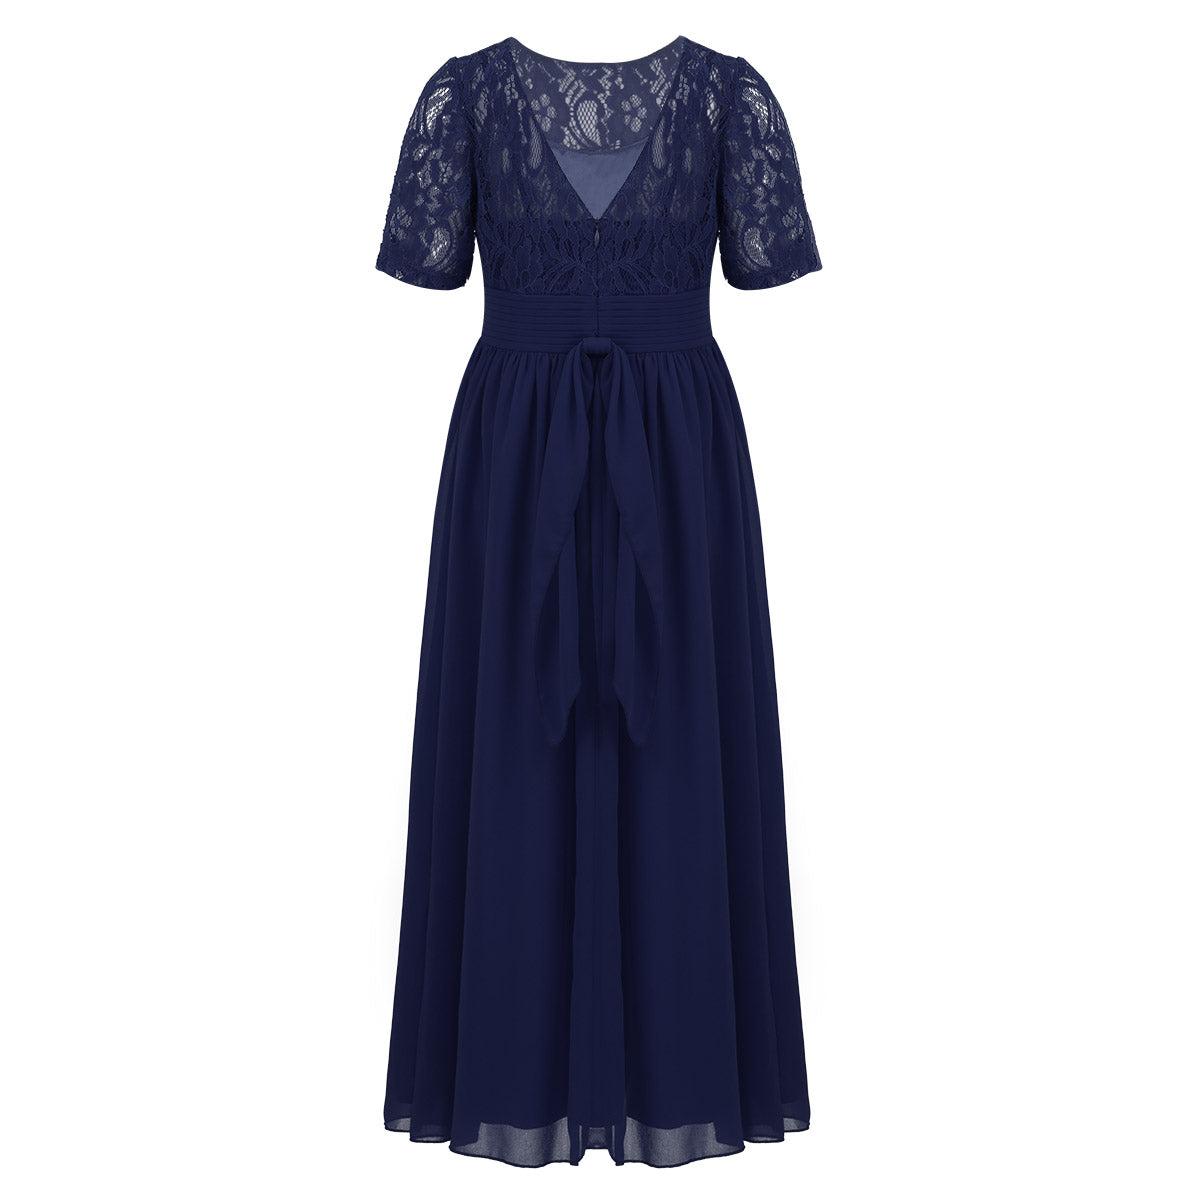 Girls Navy Chiffon Dress